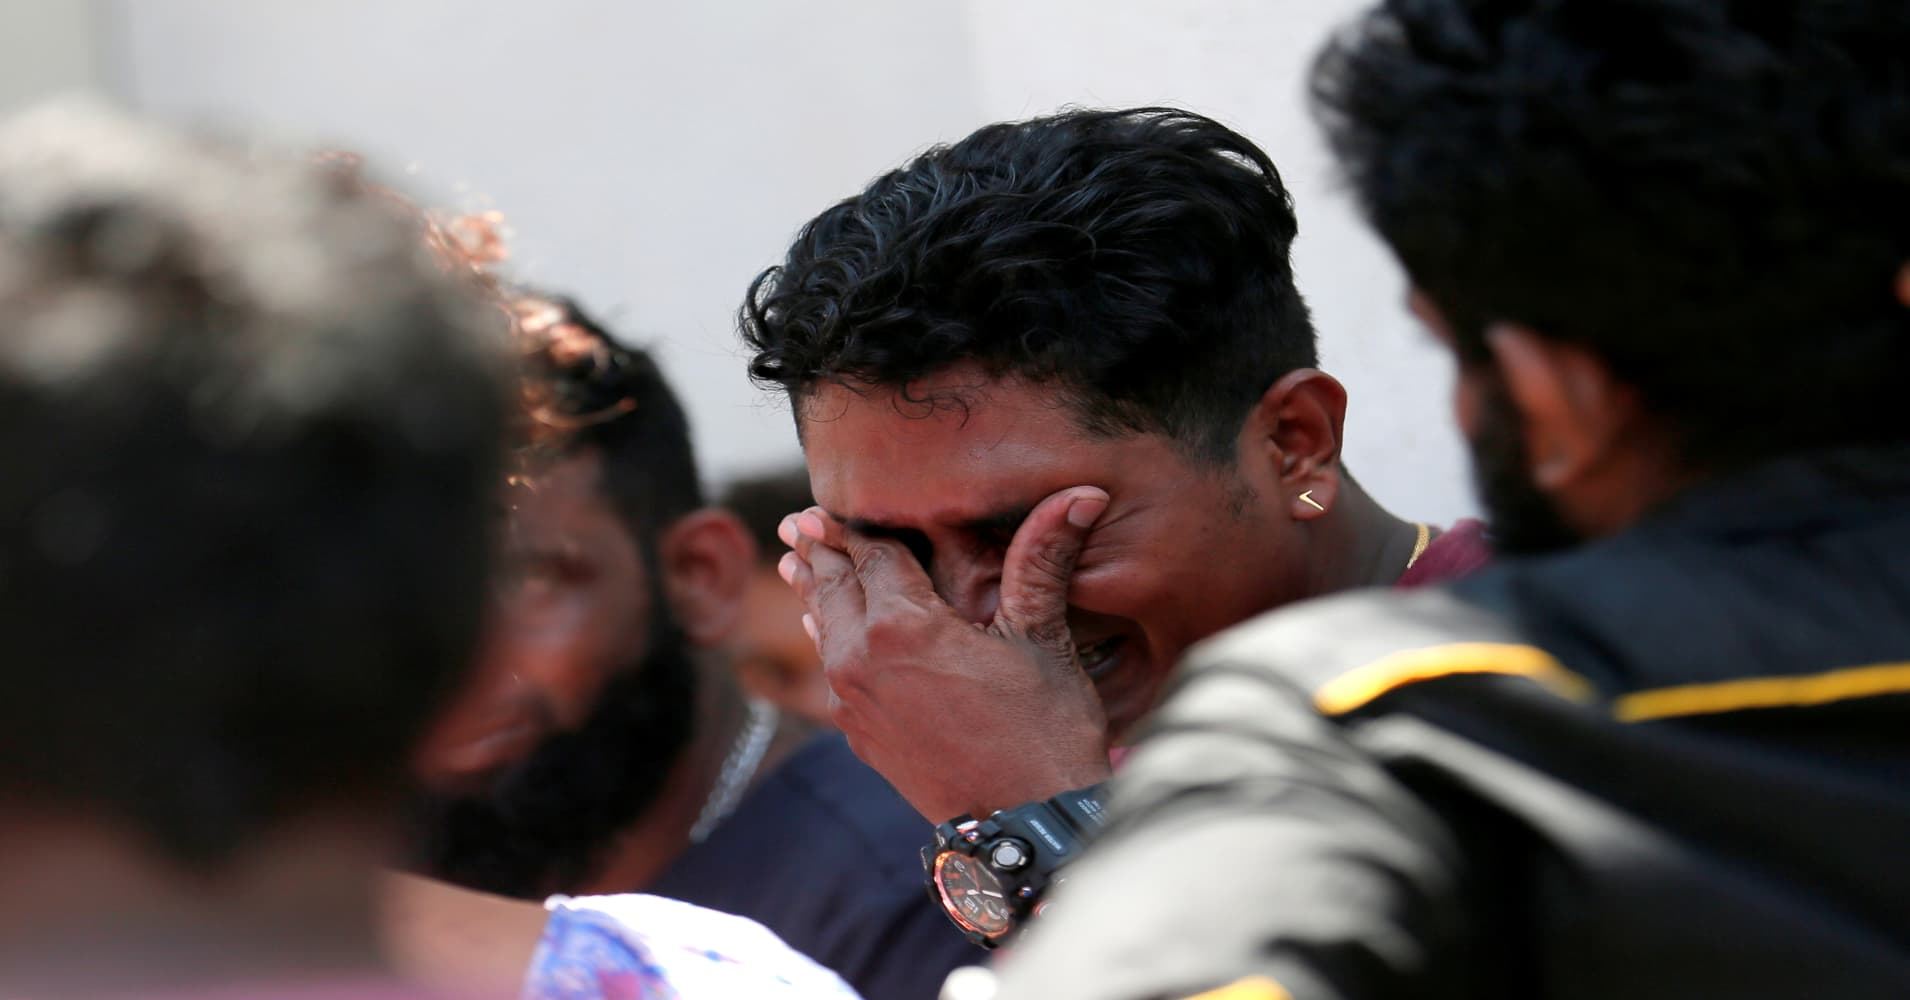 US citizens among those killed in Sri Lanka Easter attacks, secretary of State Pompeo says